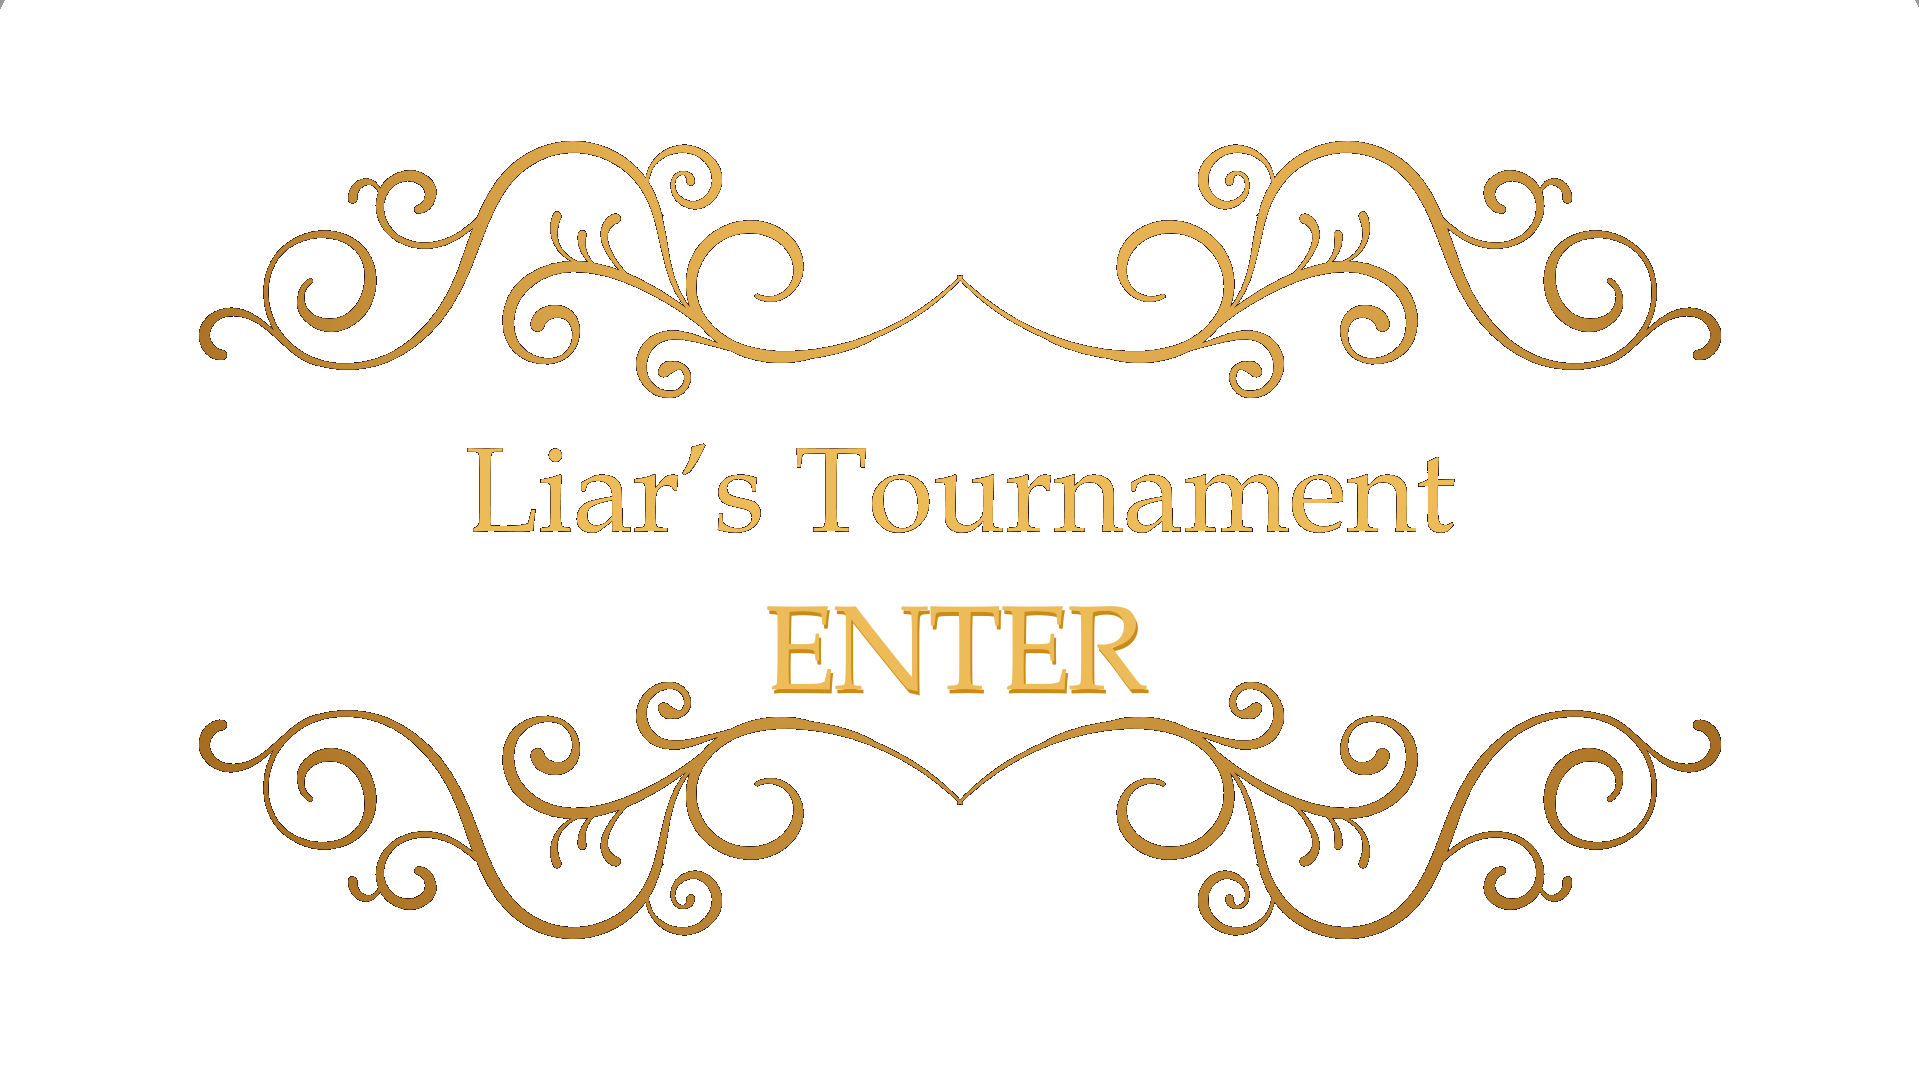 Liar's Tournament